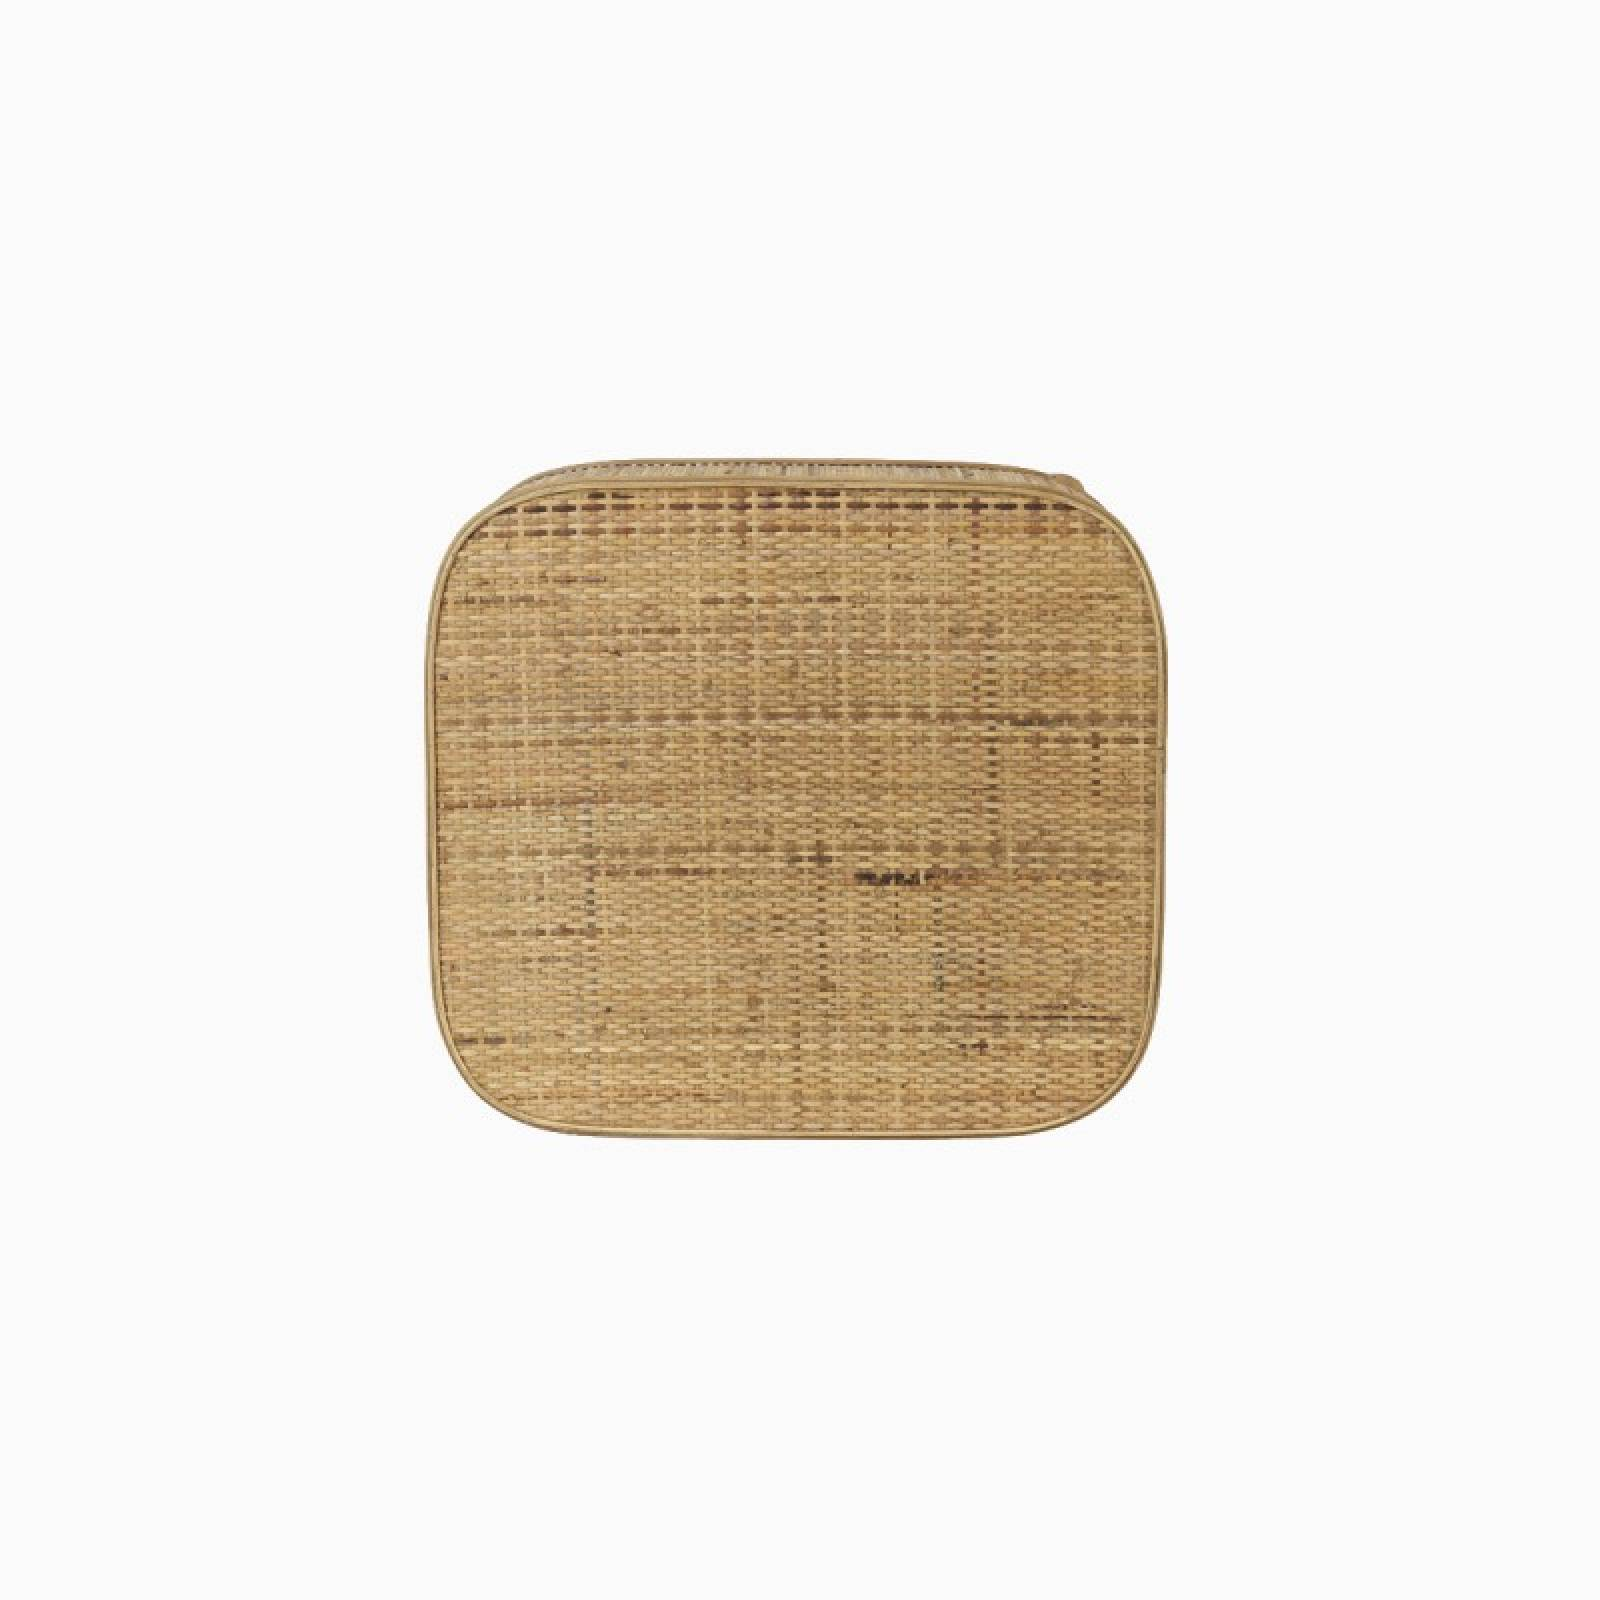 Canya Rectangular Woven Cane Side Table In Natural thumbnails